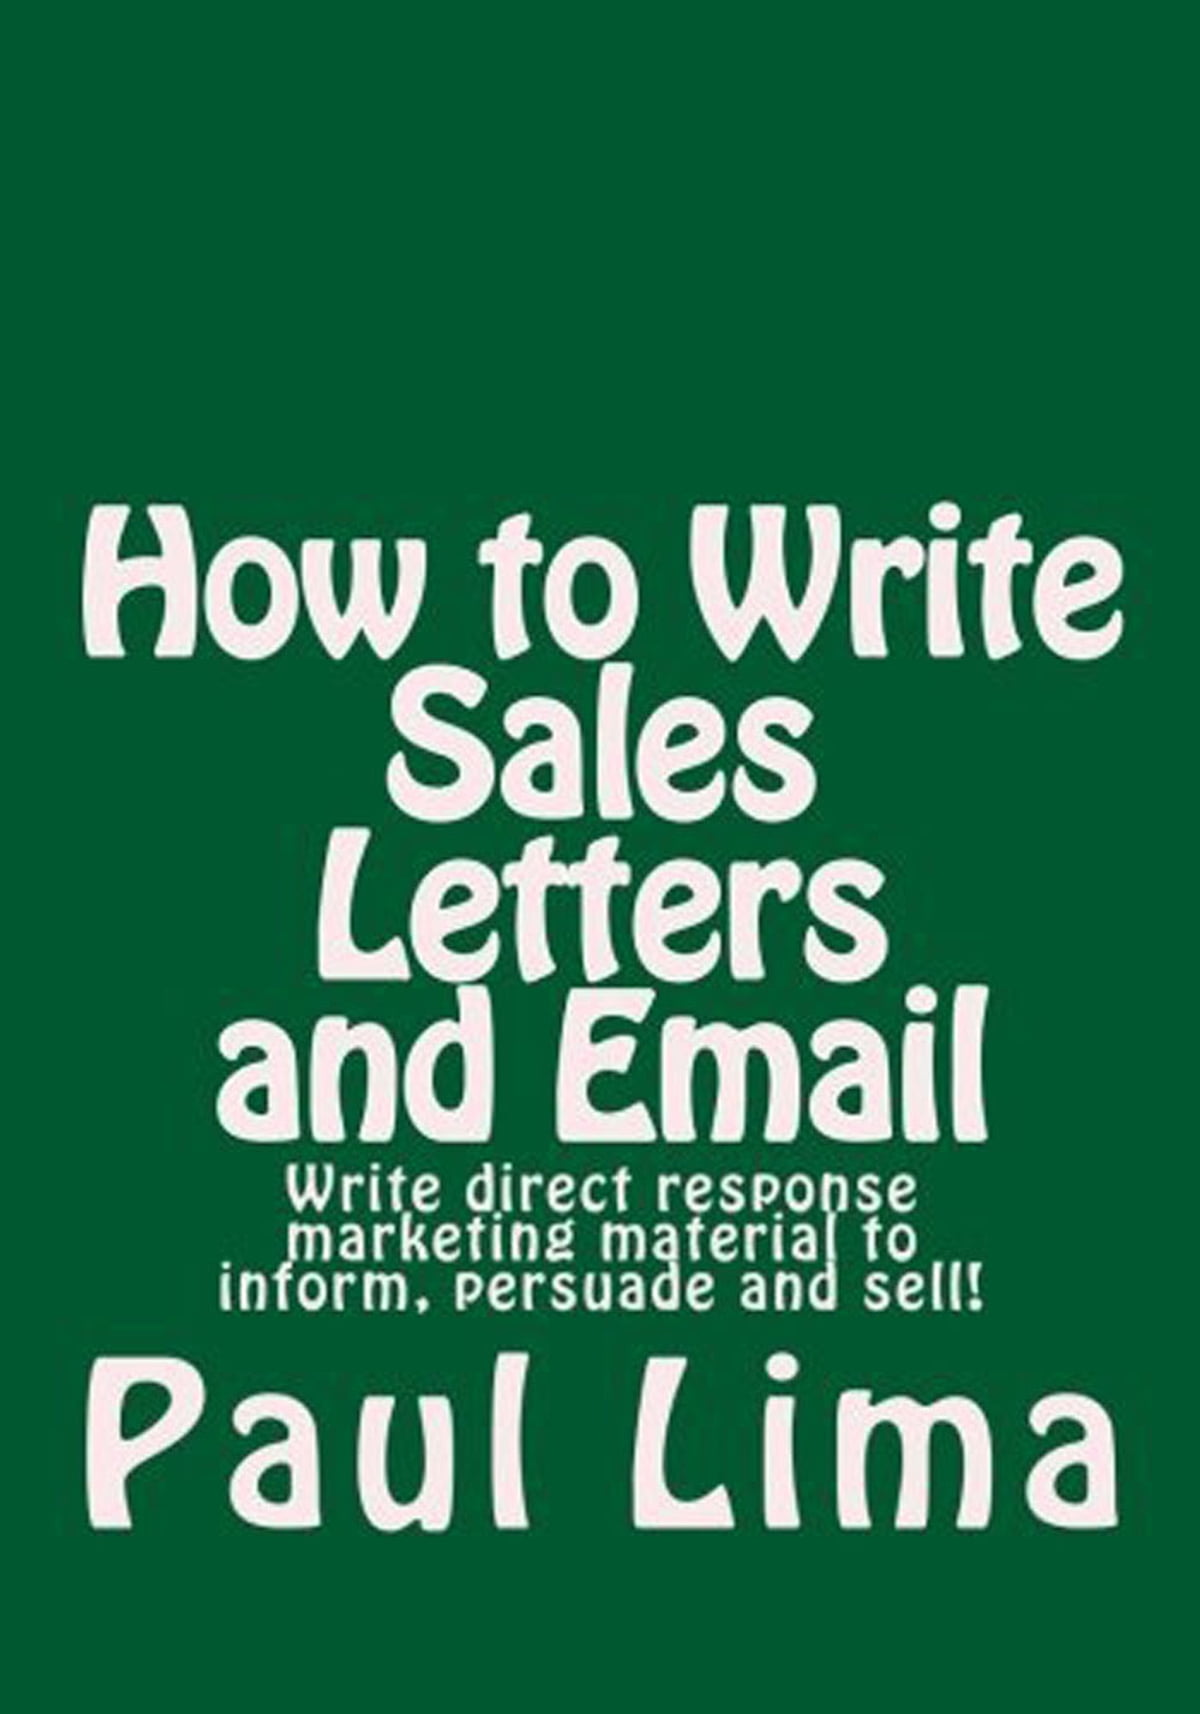 How To Write Sales Letters And Email Ebook By Paul Lima